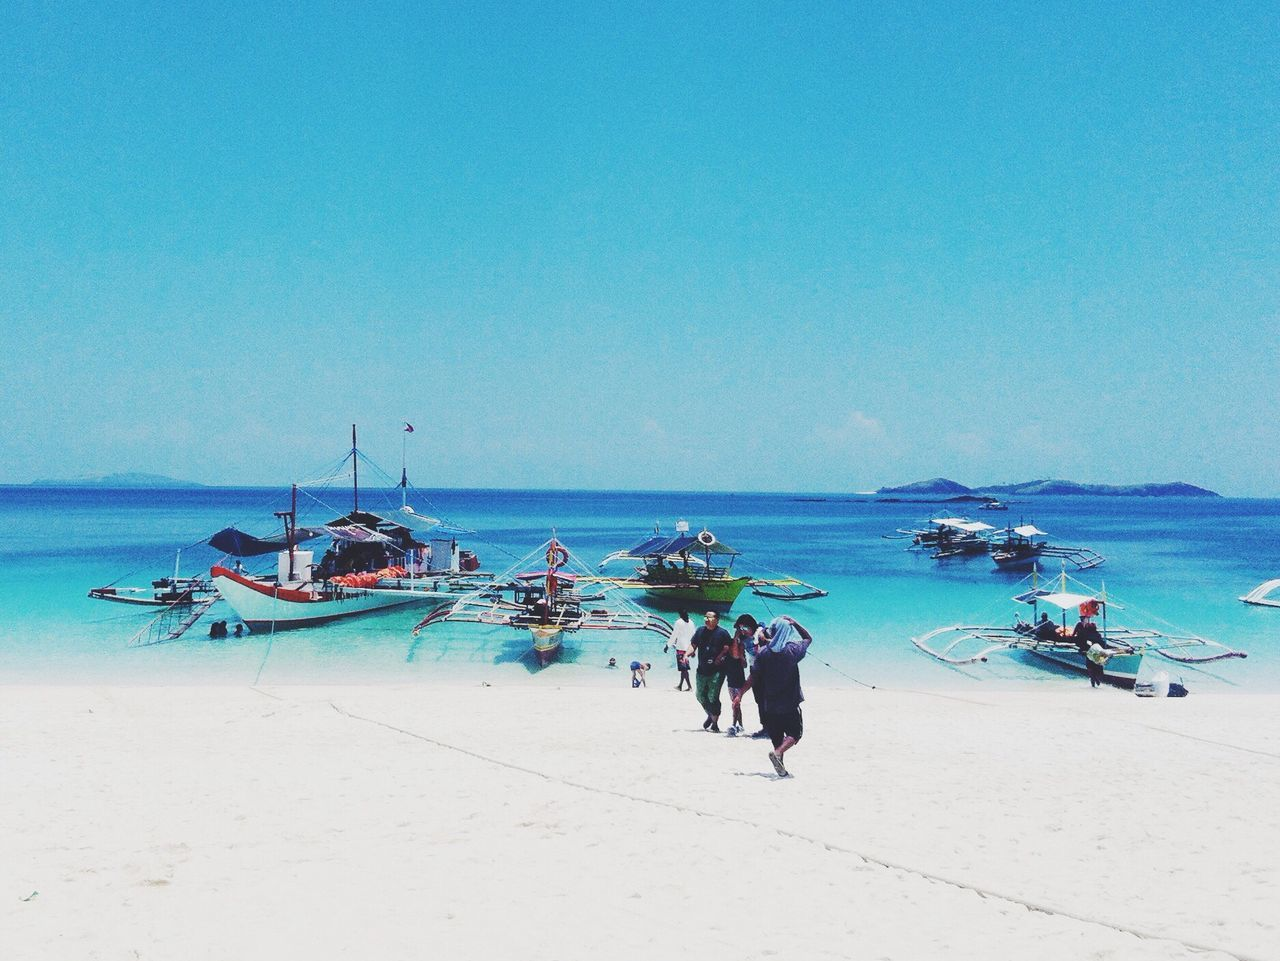 sea, beach, water, nautical vessel, transportation, shore, real people, horizon over water, sand, scenics, men, mode of transport, nature, full length, moored, day, fisherman, beauty in nature, outdoors, clear sky, sky, outrigger, blue, occupation, large group of people, longtail boat, jet boat, adult, people